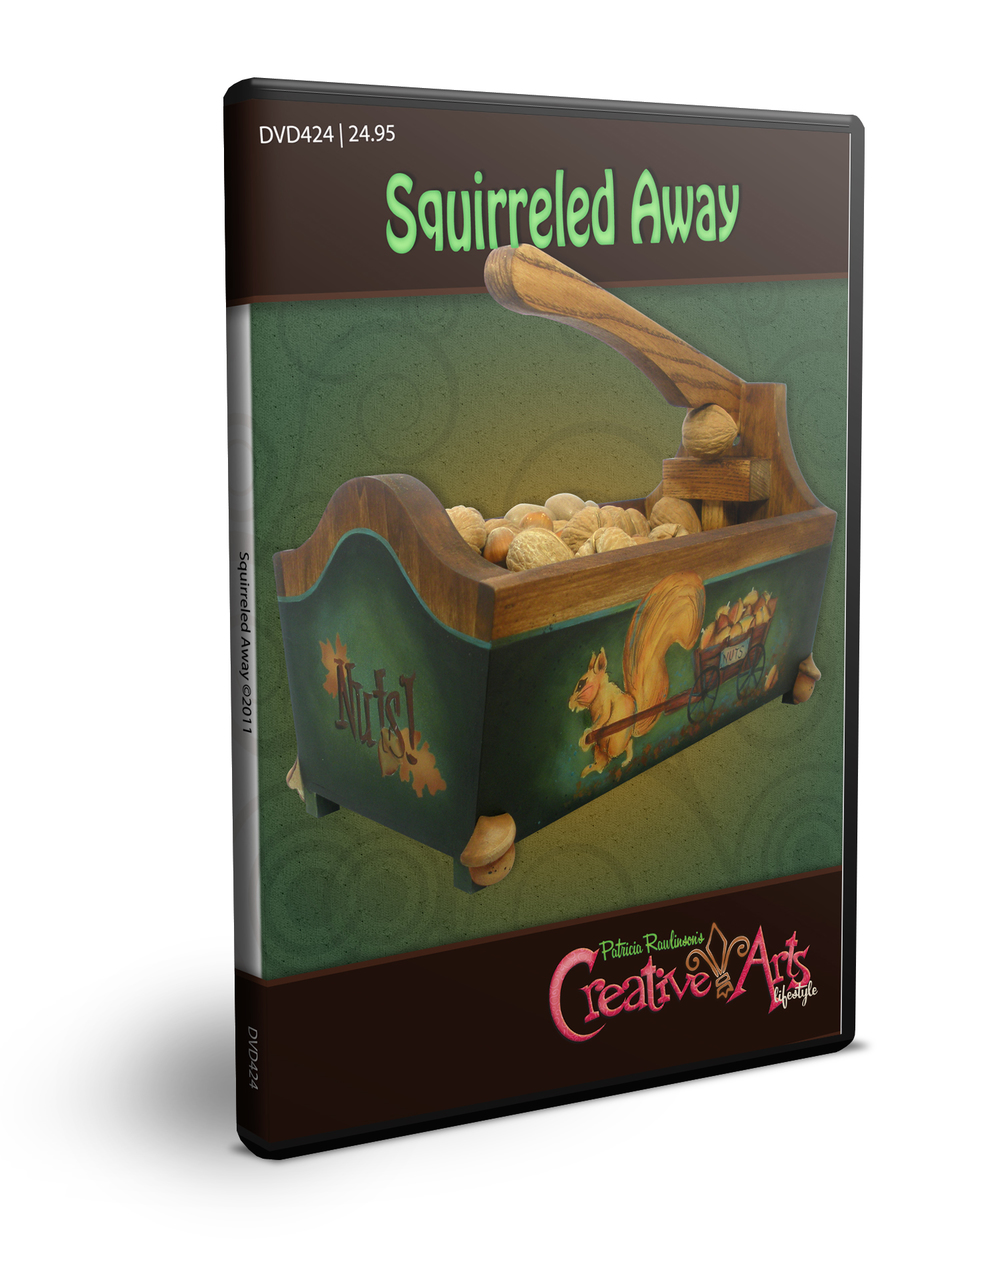 Squirreling Away DVD & Pattern Packet  - Patricia Rawlinson